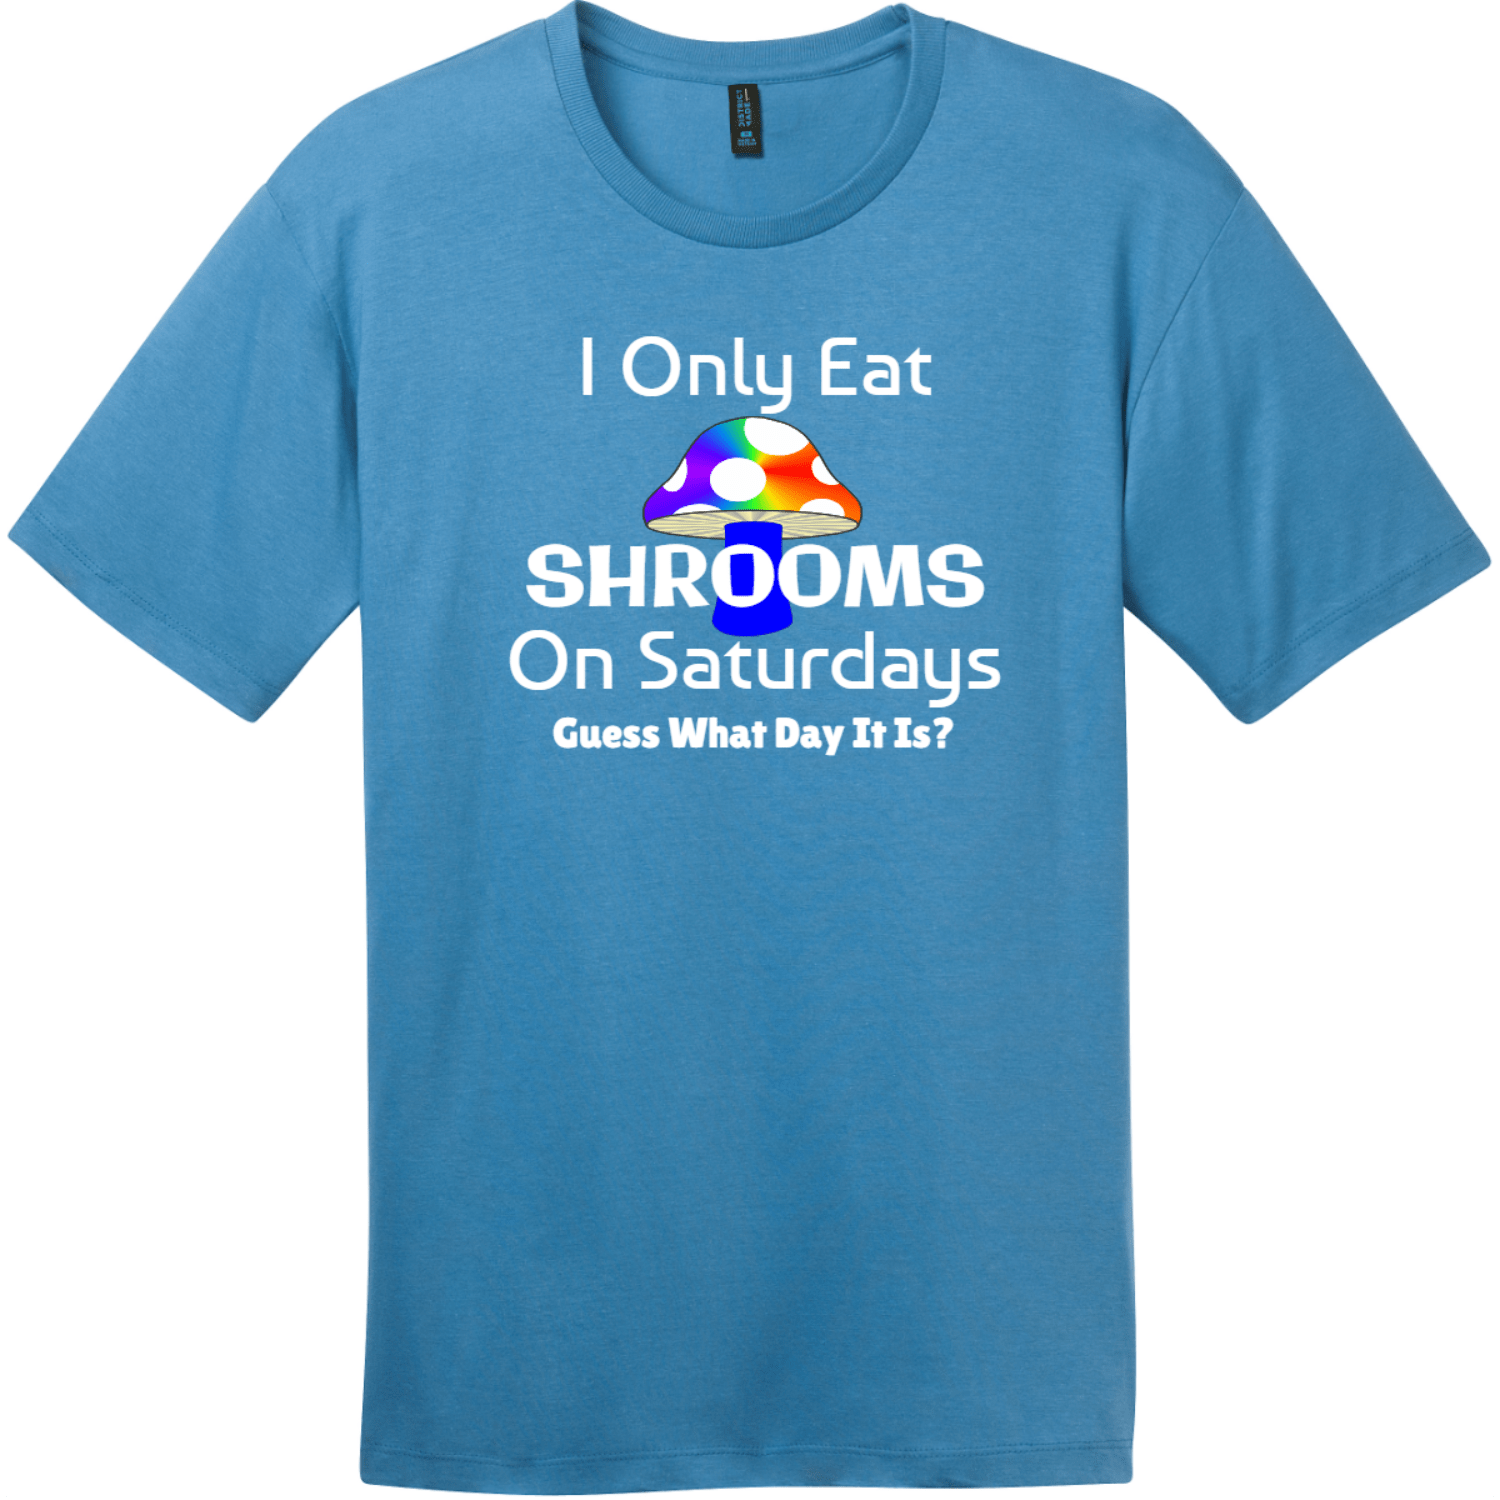 I Only Eat Shrooms On Saturdays T-Shirt Clean Denim District Perfect Weight Tee DT104